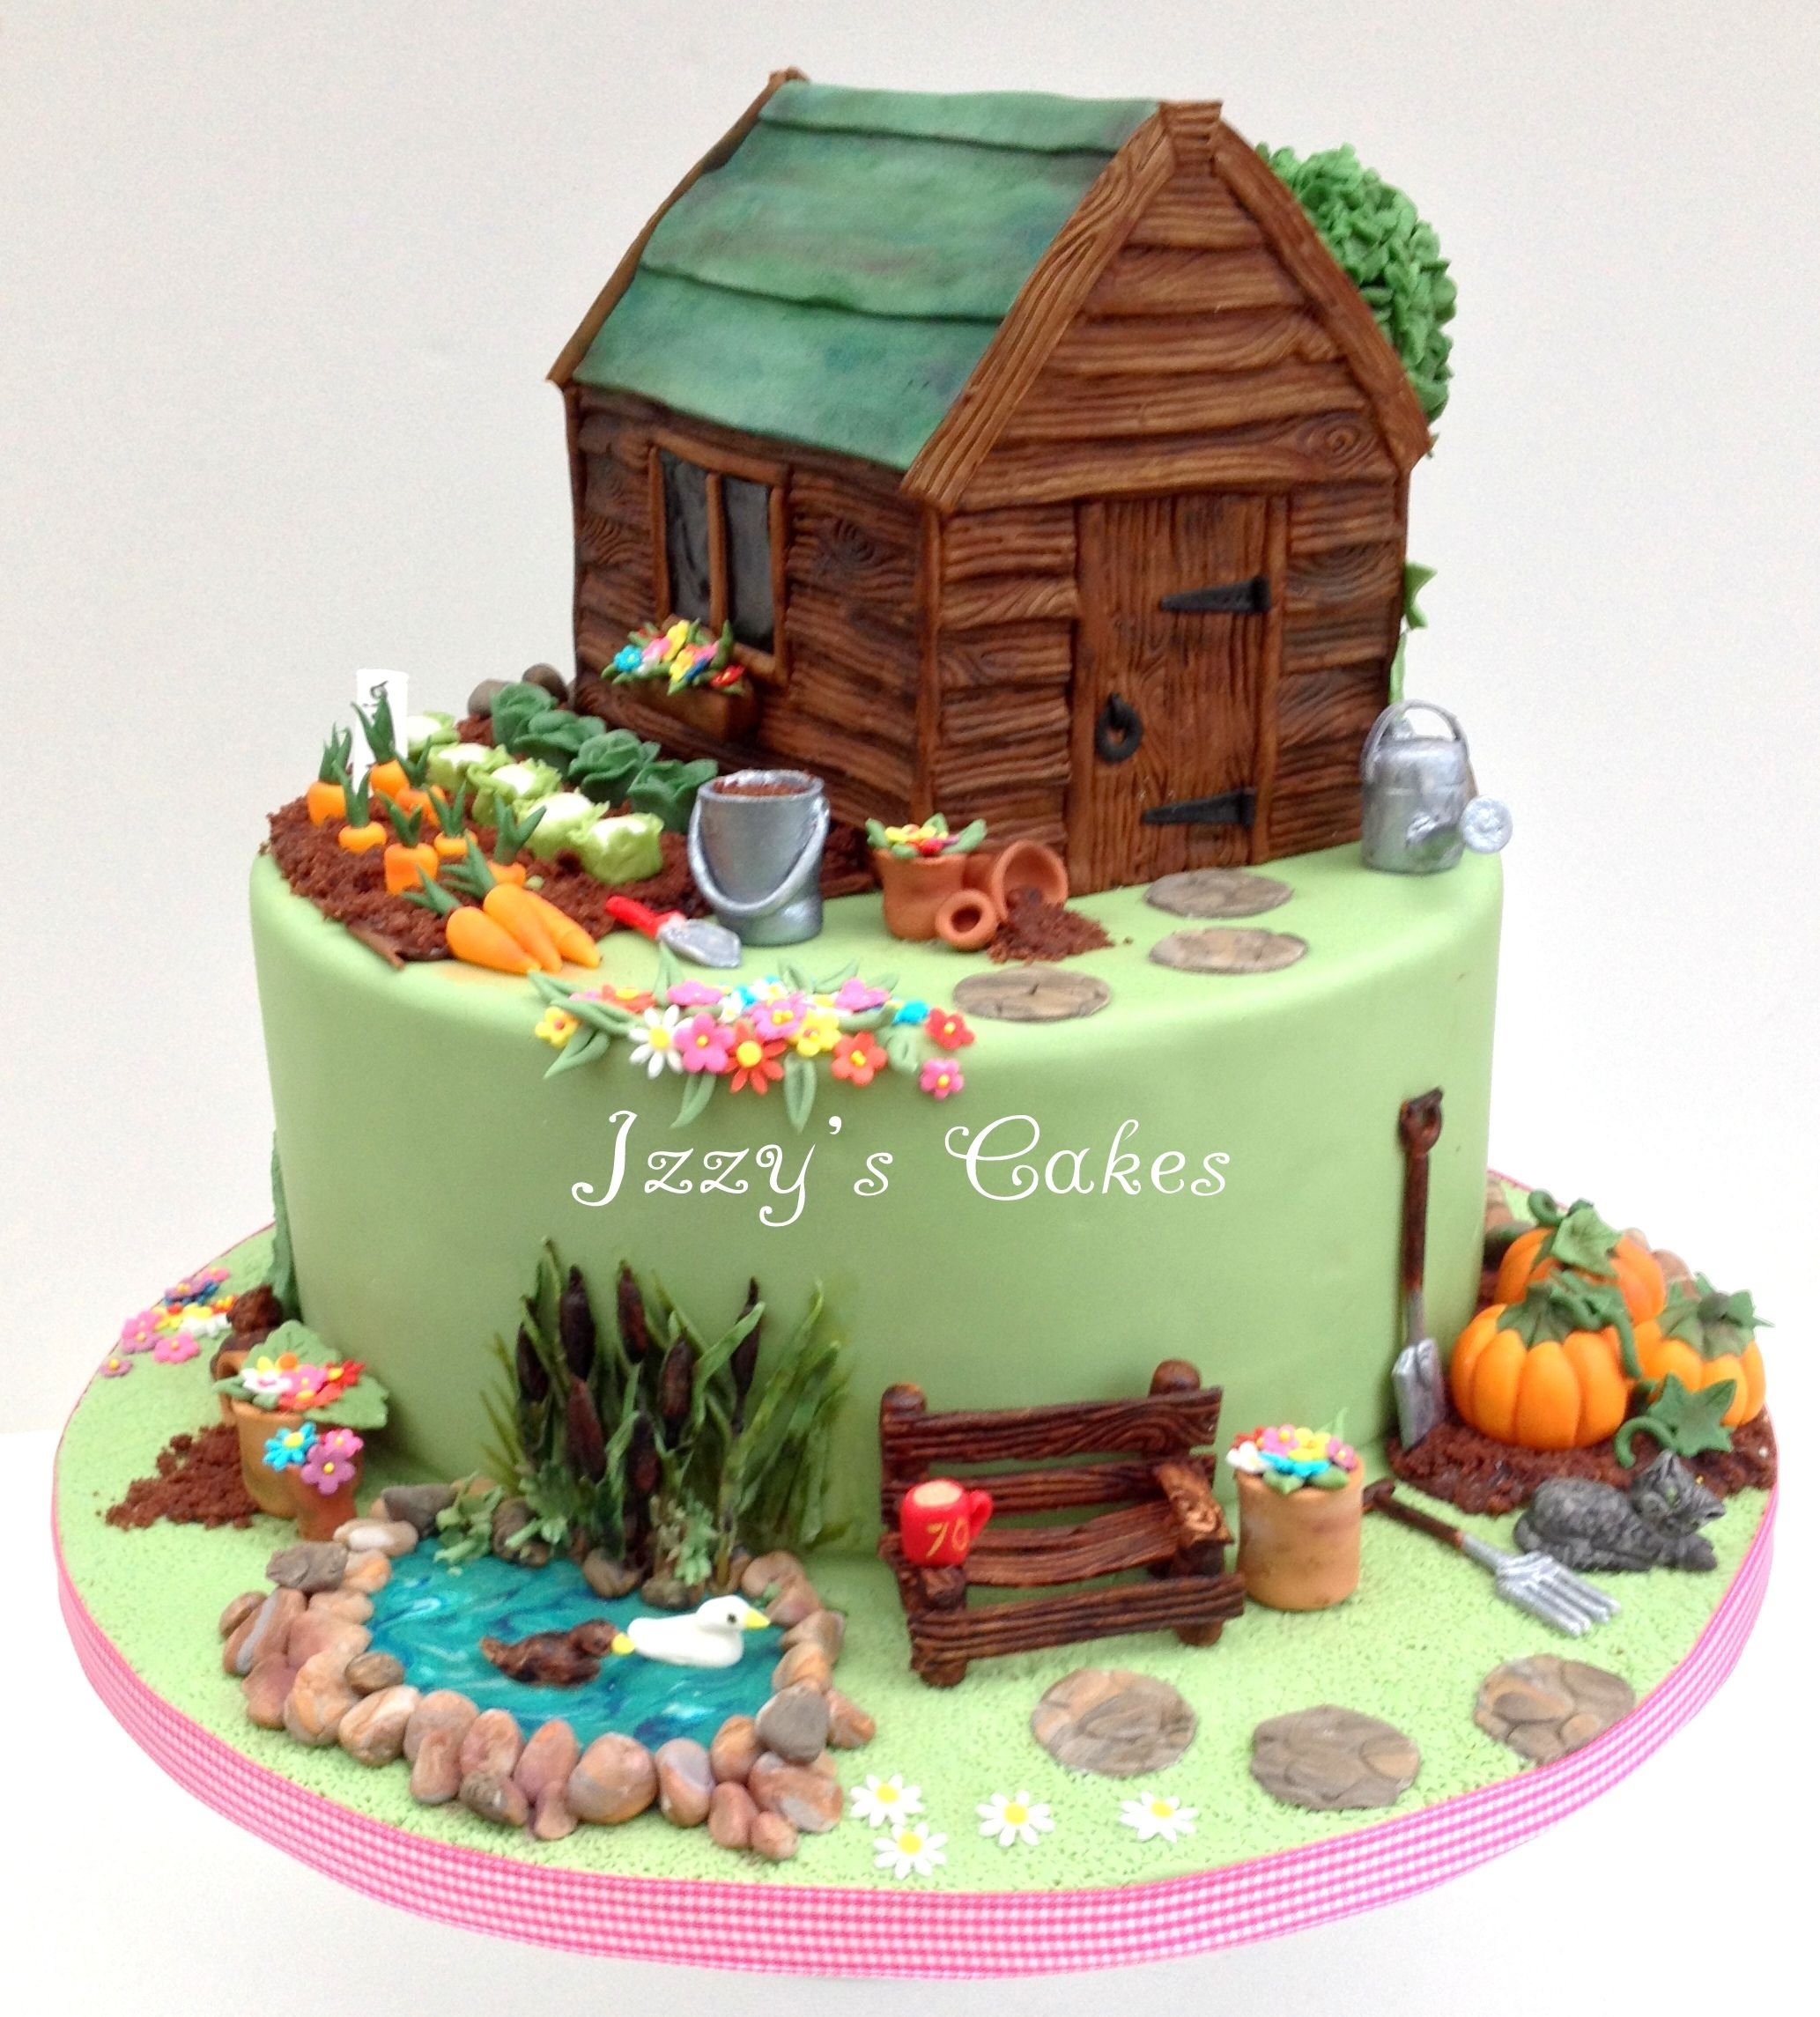 Pin by Jill Shaw on Creative cakes | Pinterest | Garden cakes, Cake ...